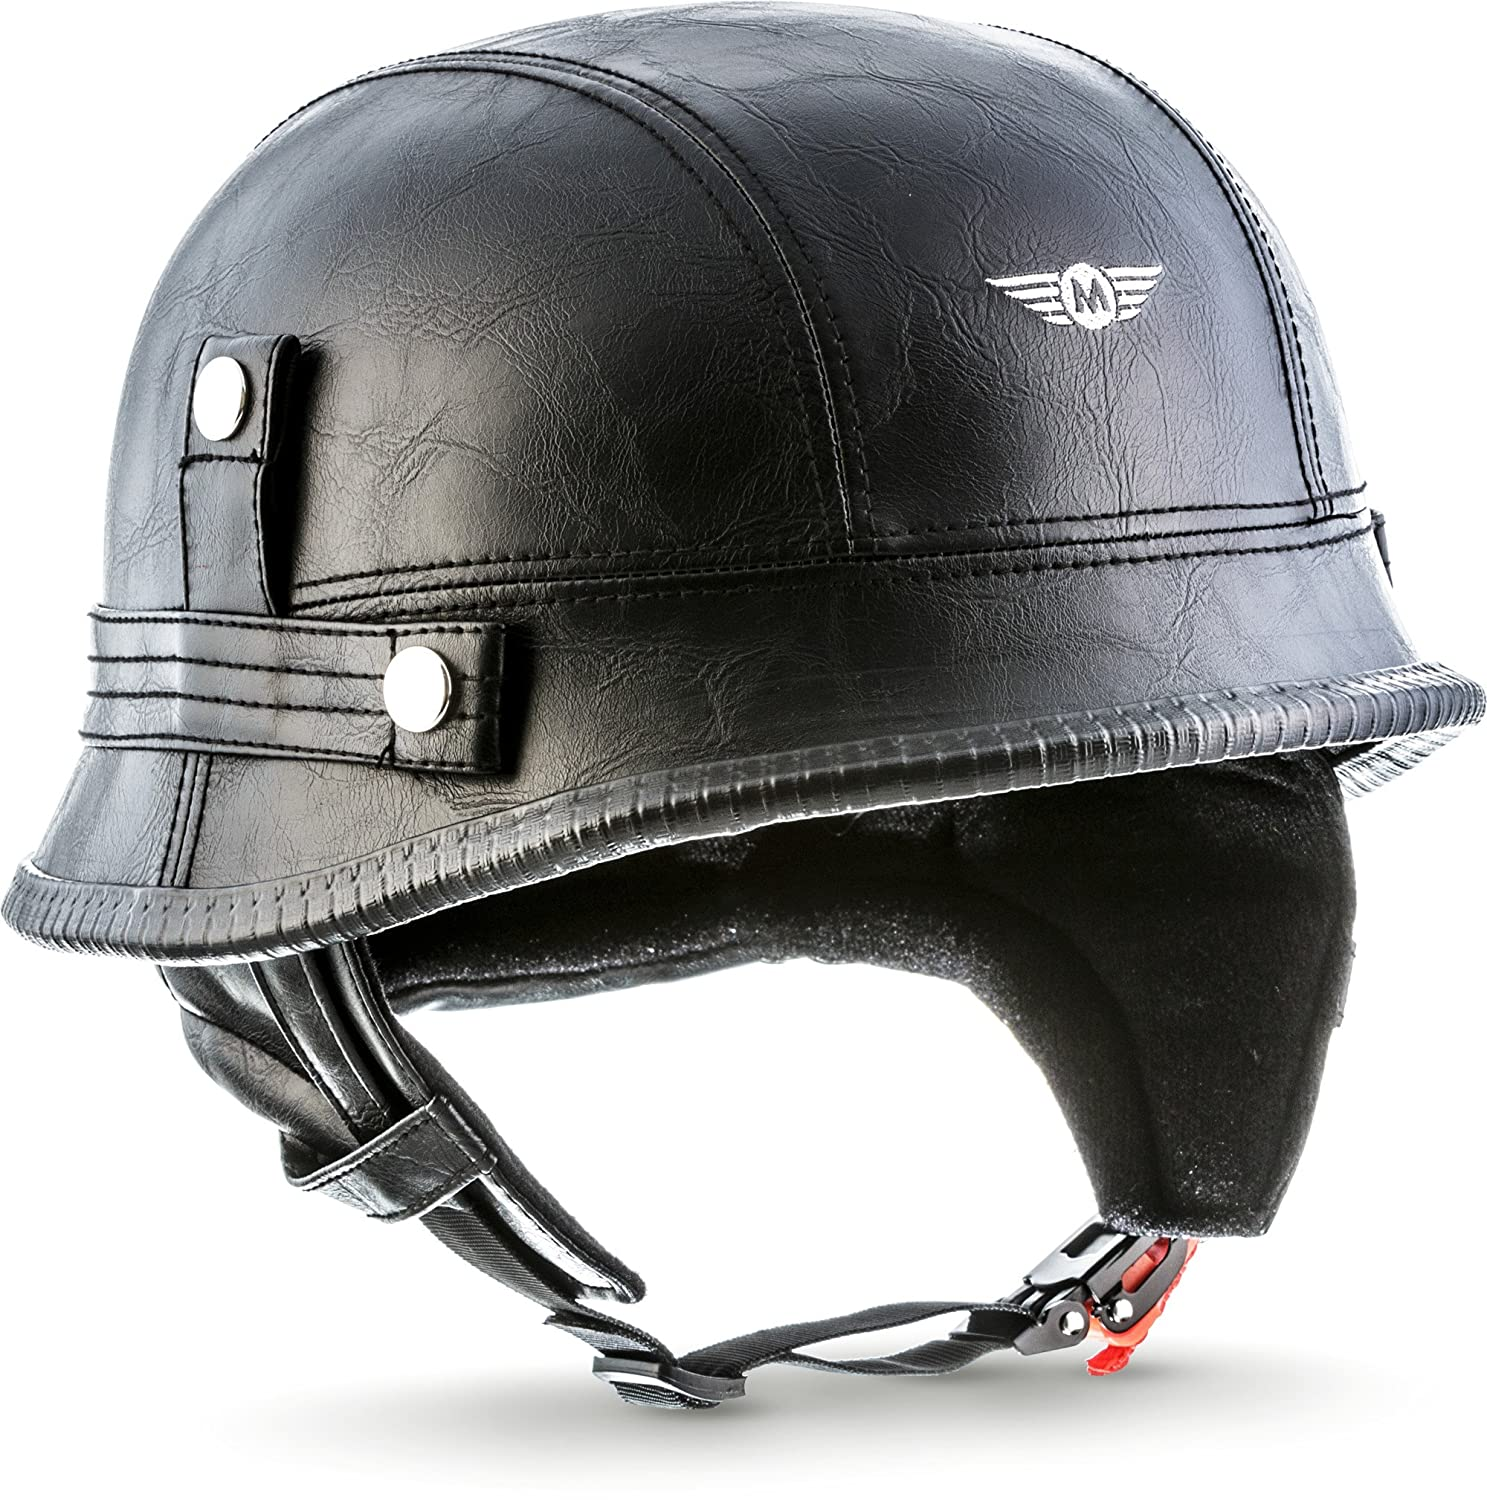 MOTO HELMETS D33  –   Braincap Leather Wehrmacht Steel Half Shell Motorcycle Vespa Scooter Jet Bobber Helmet Pilot Cruiser Vintage Moped Chopper Helmet Biker Retro, Including Fabric Bag D33_LEATHER-BLACK_XXL